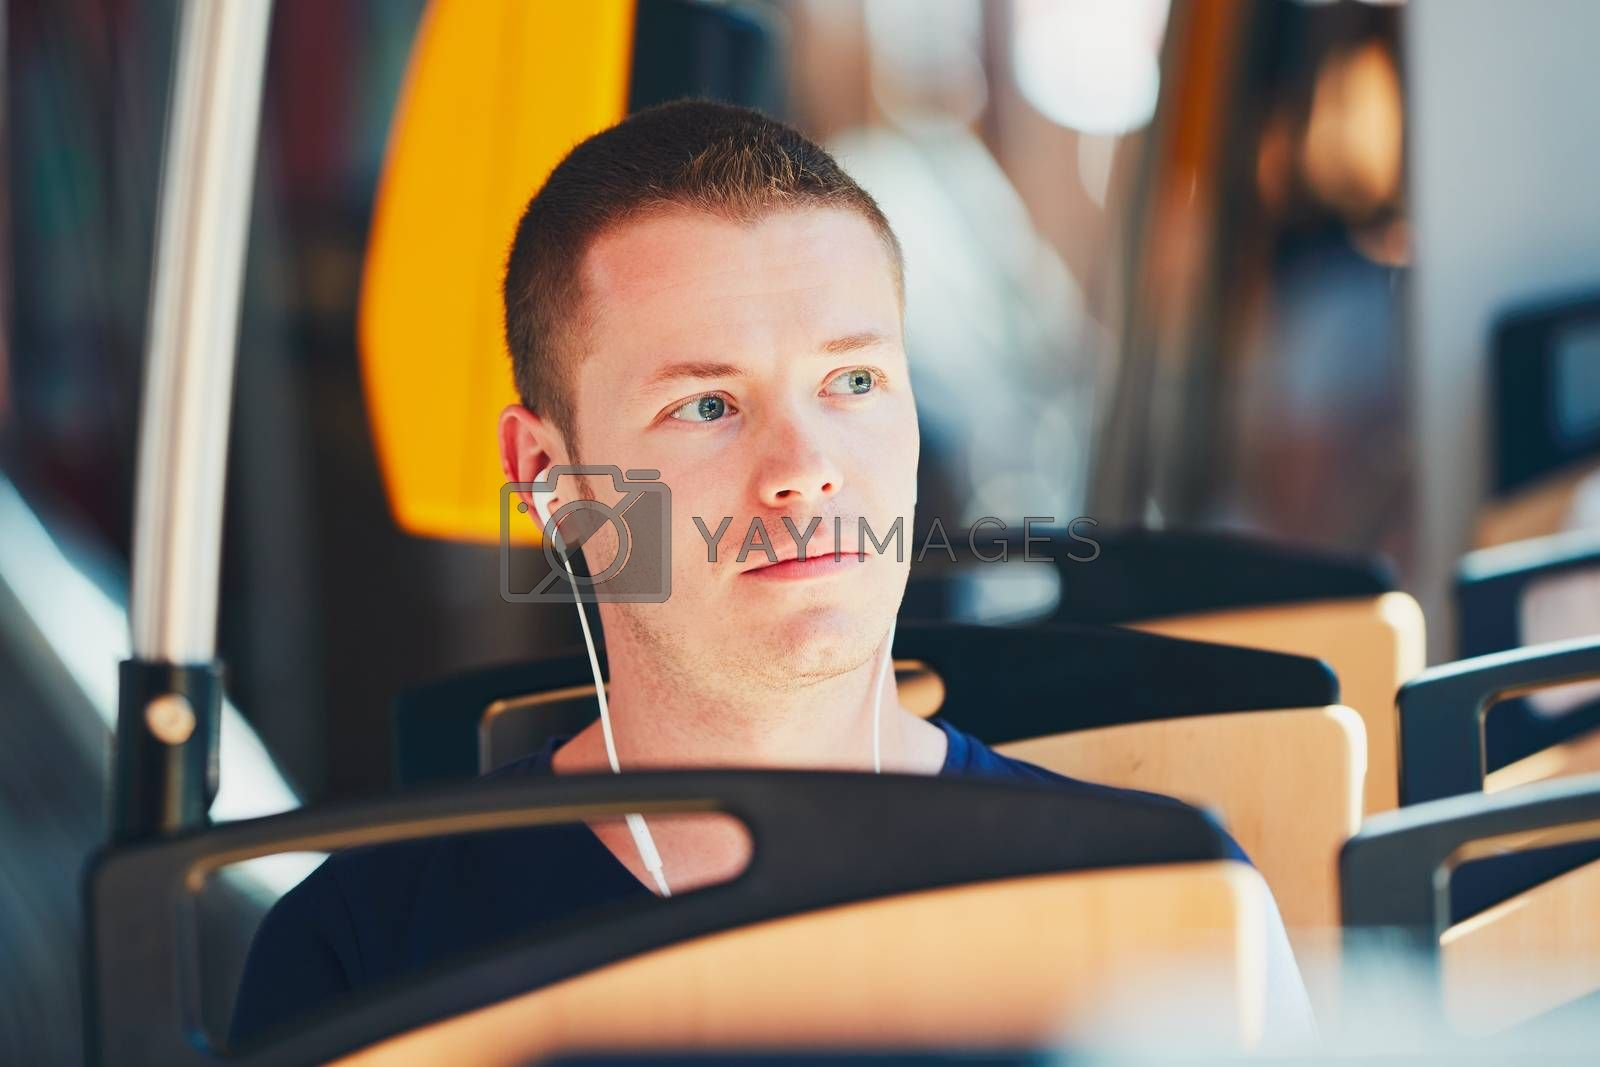 Everyday life and commuting to work by public transportation. Handsome young man is traveling by tram. Man is wearing headphones and listening to music.